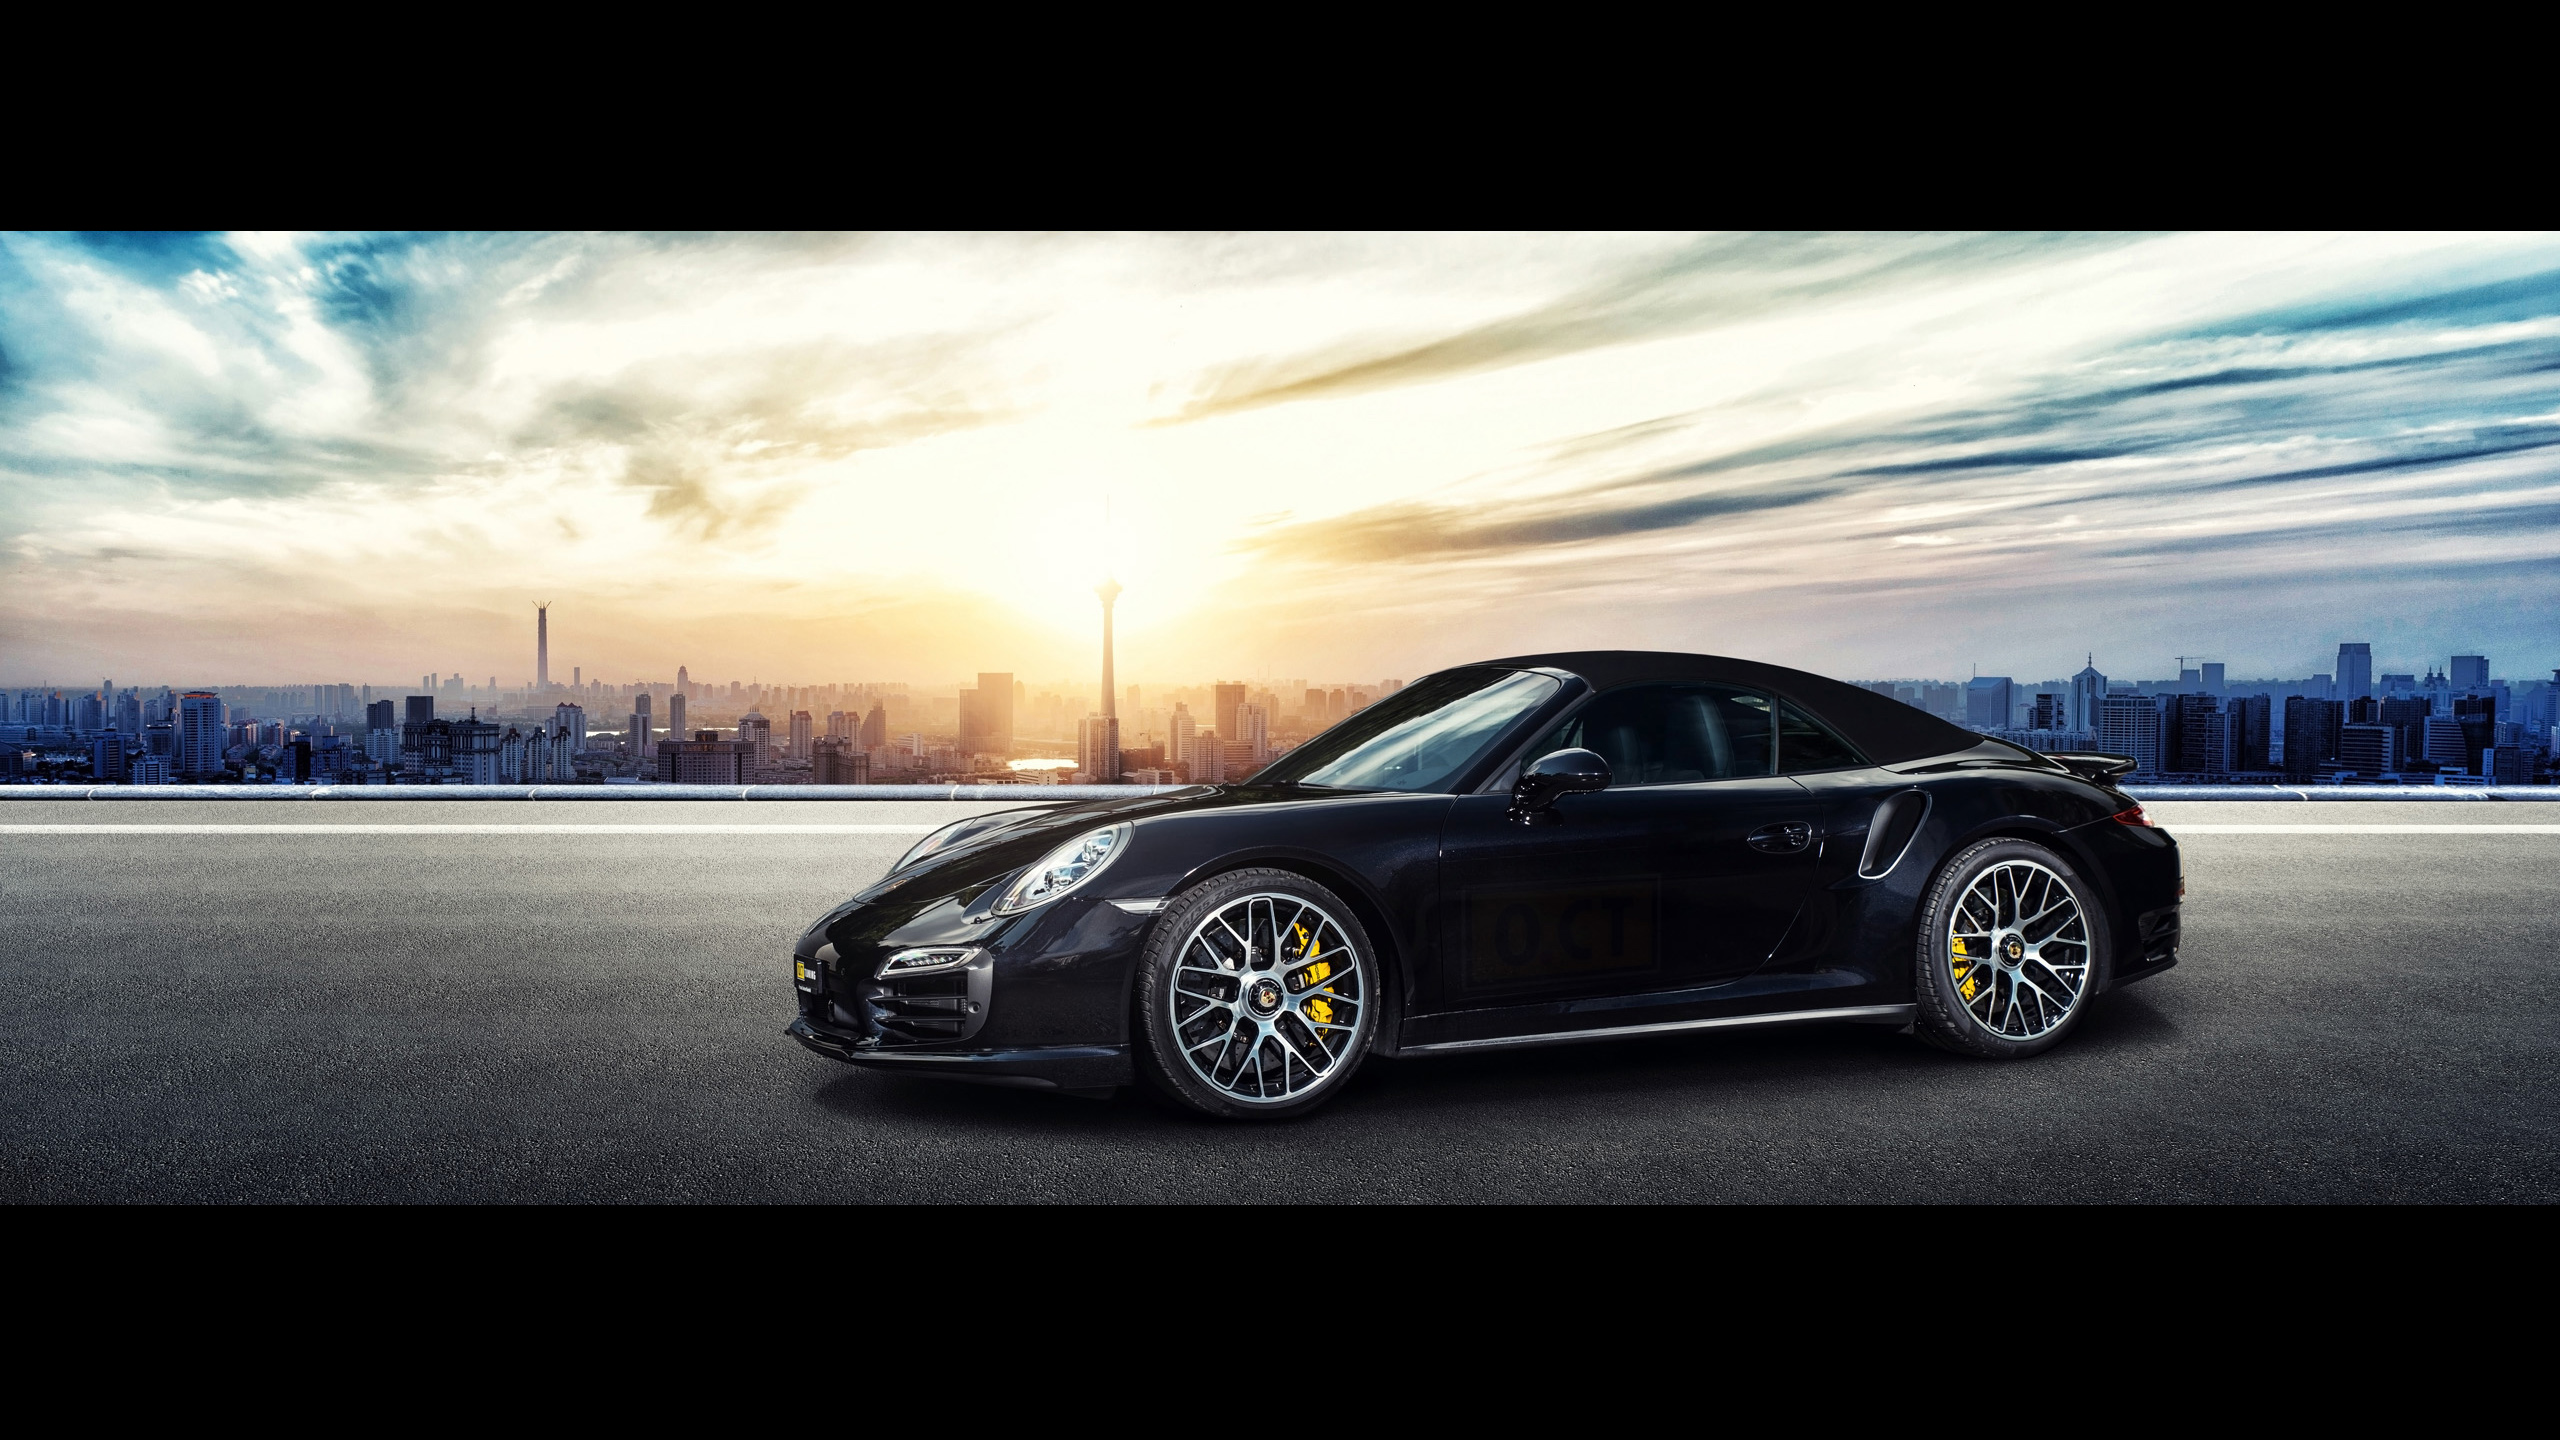 Porsche 911 Turbo Wallpapers and Background Images   stmednet 2560x1440